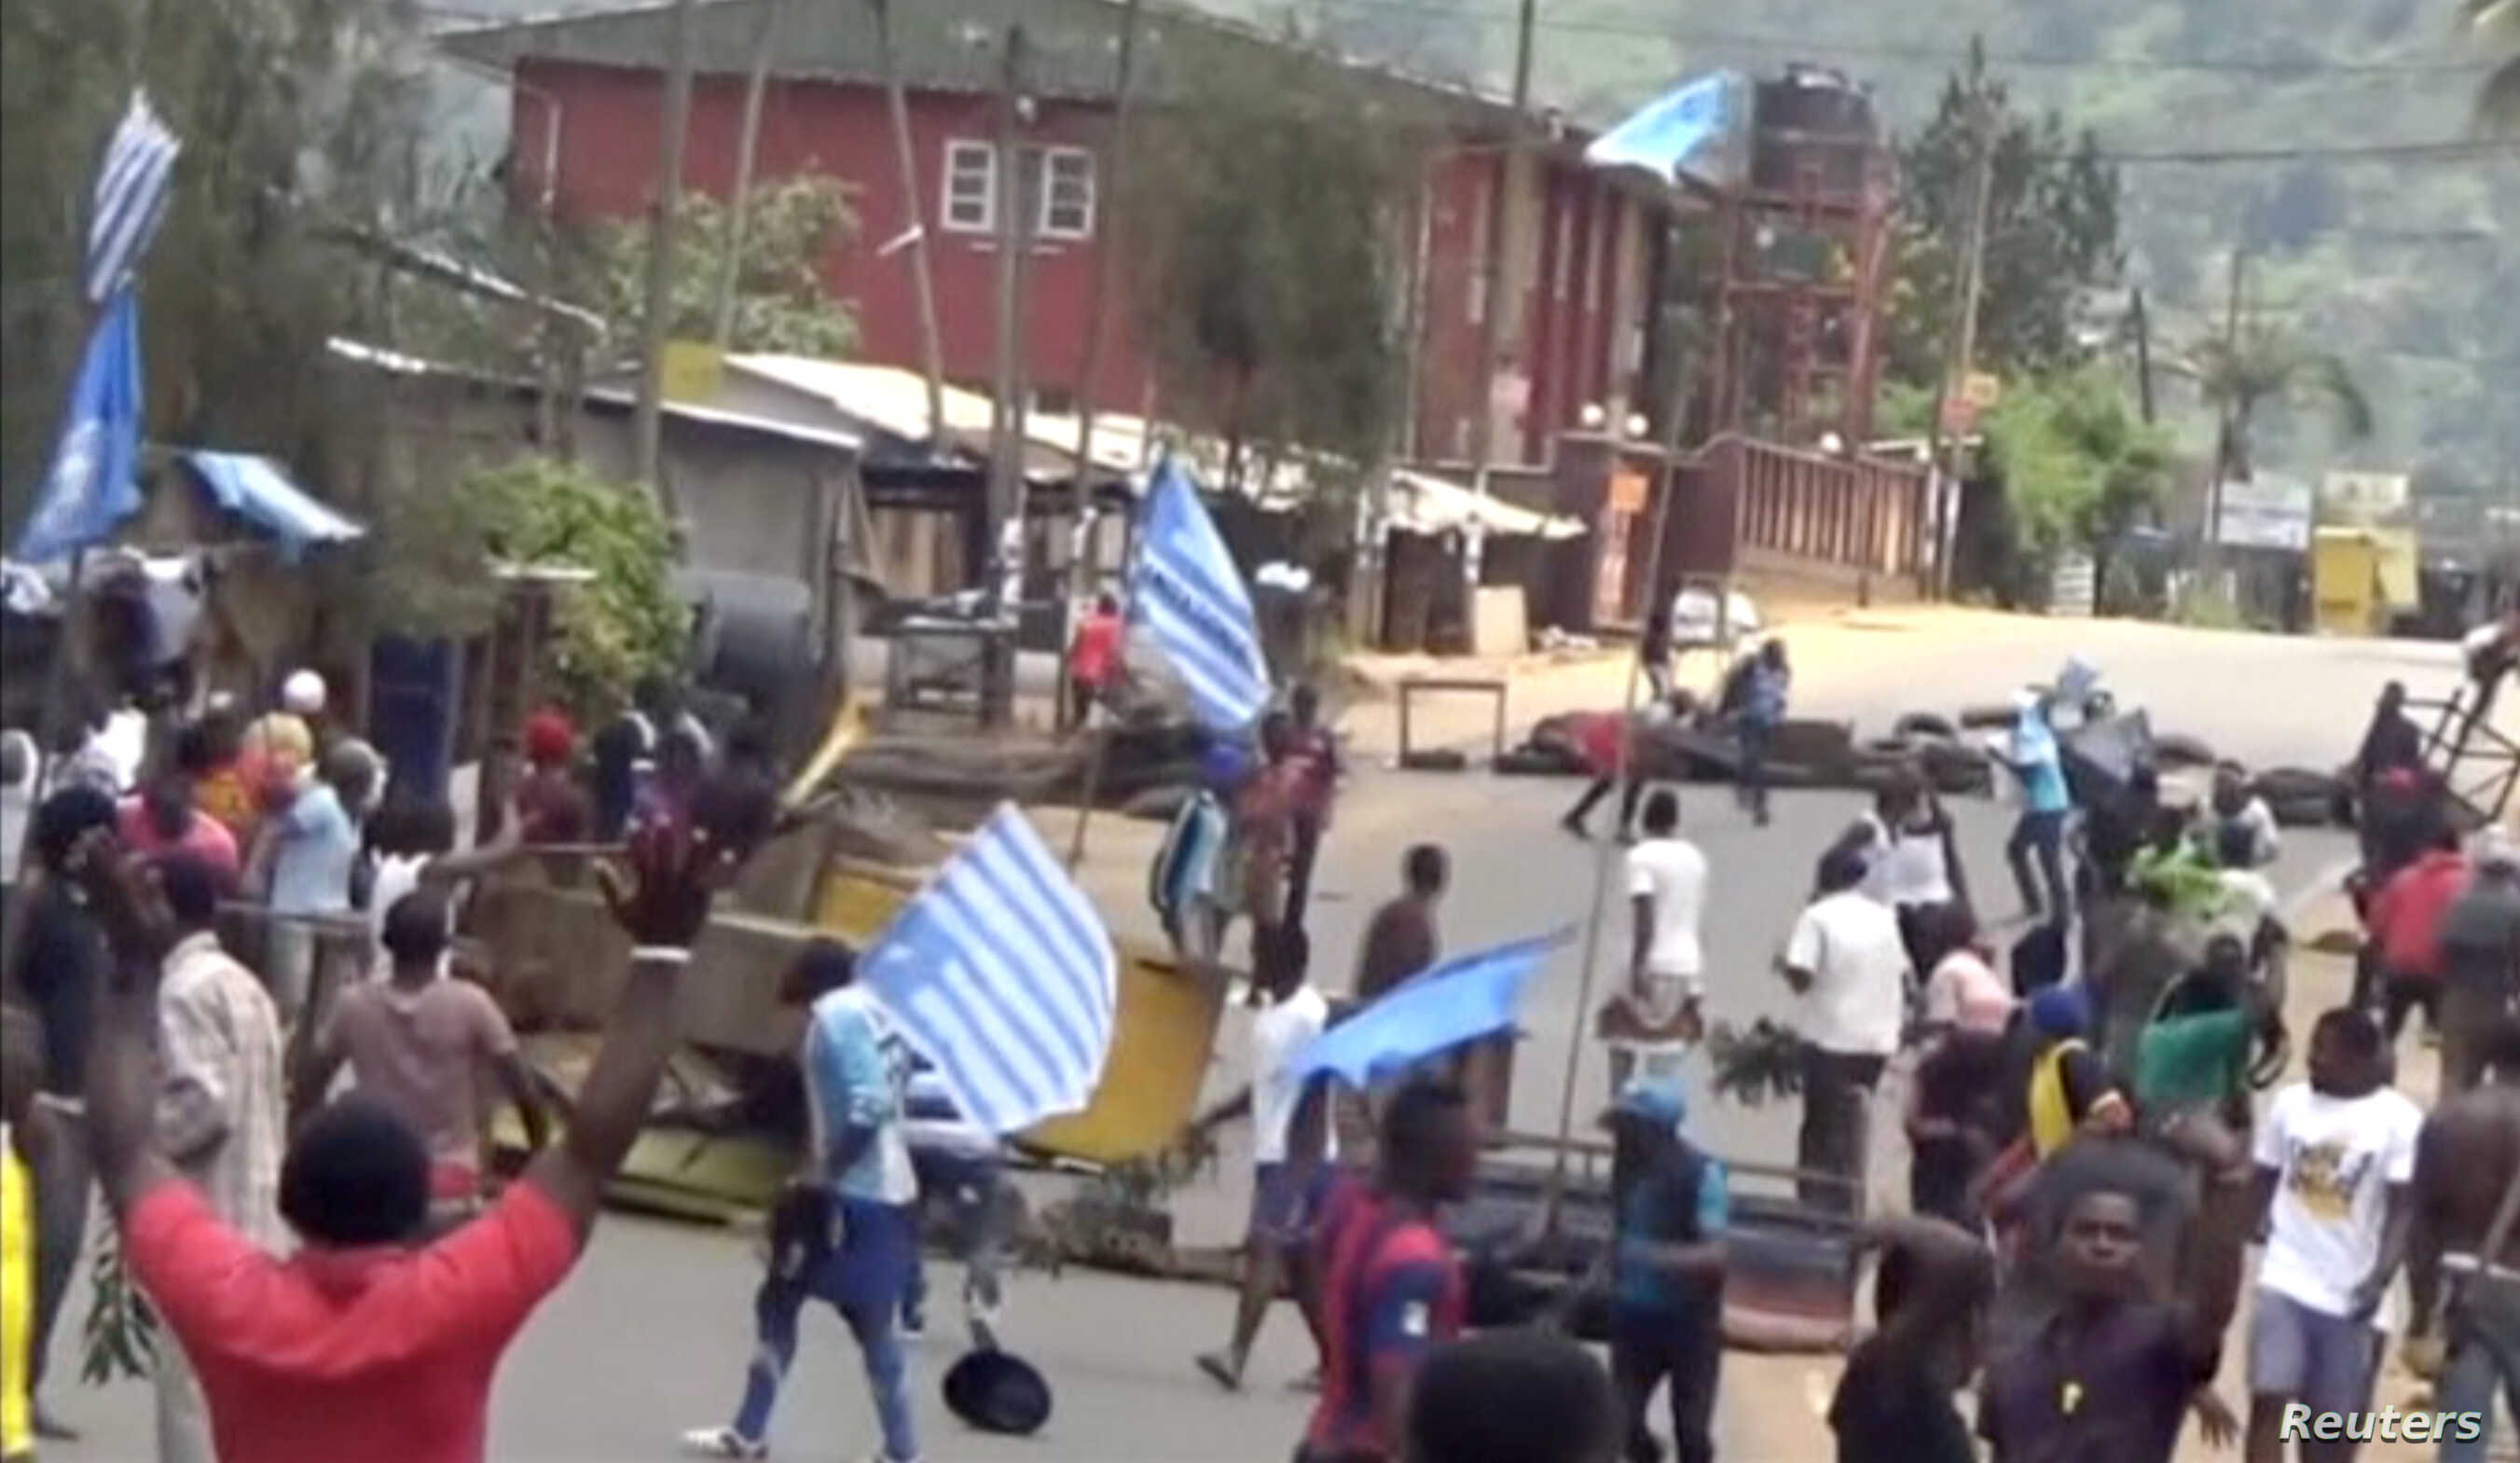 A still image taken from a video shot on Oct. 1, 2017, shows protesters waving Ambazonian flags in front of road block in the English-speaking city of Bamenda, Cameroon.